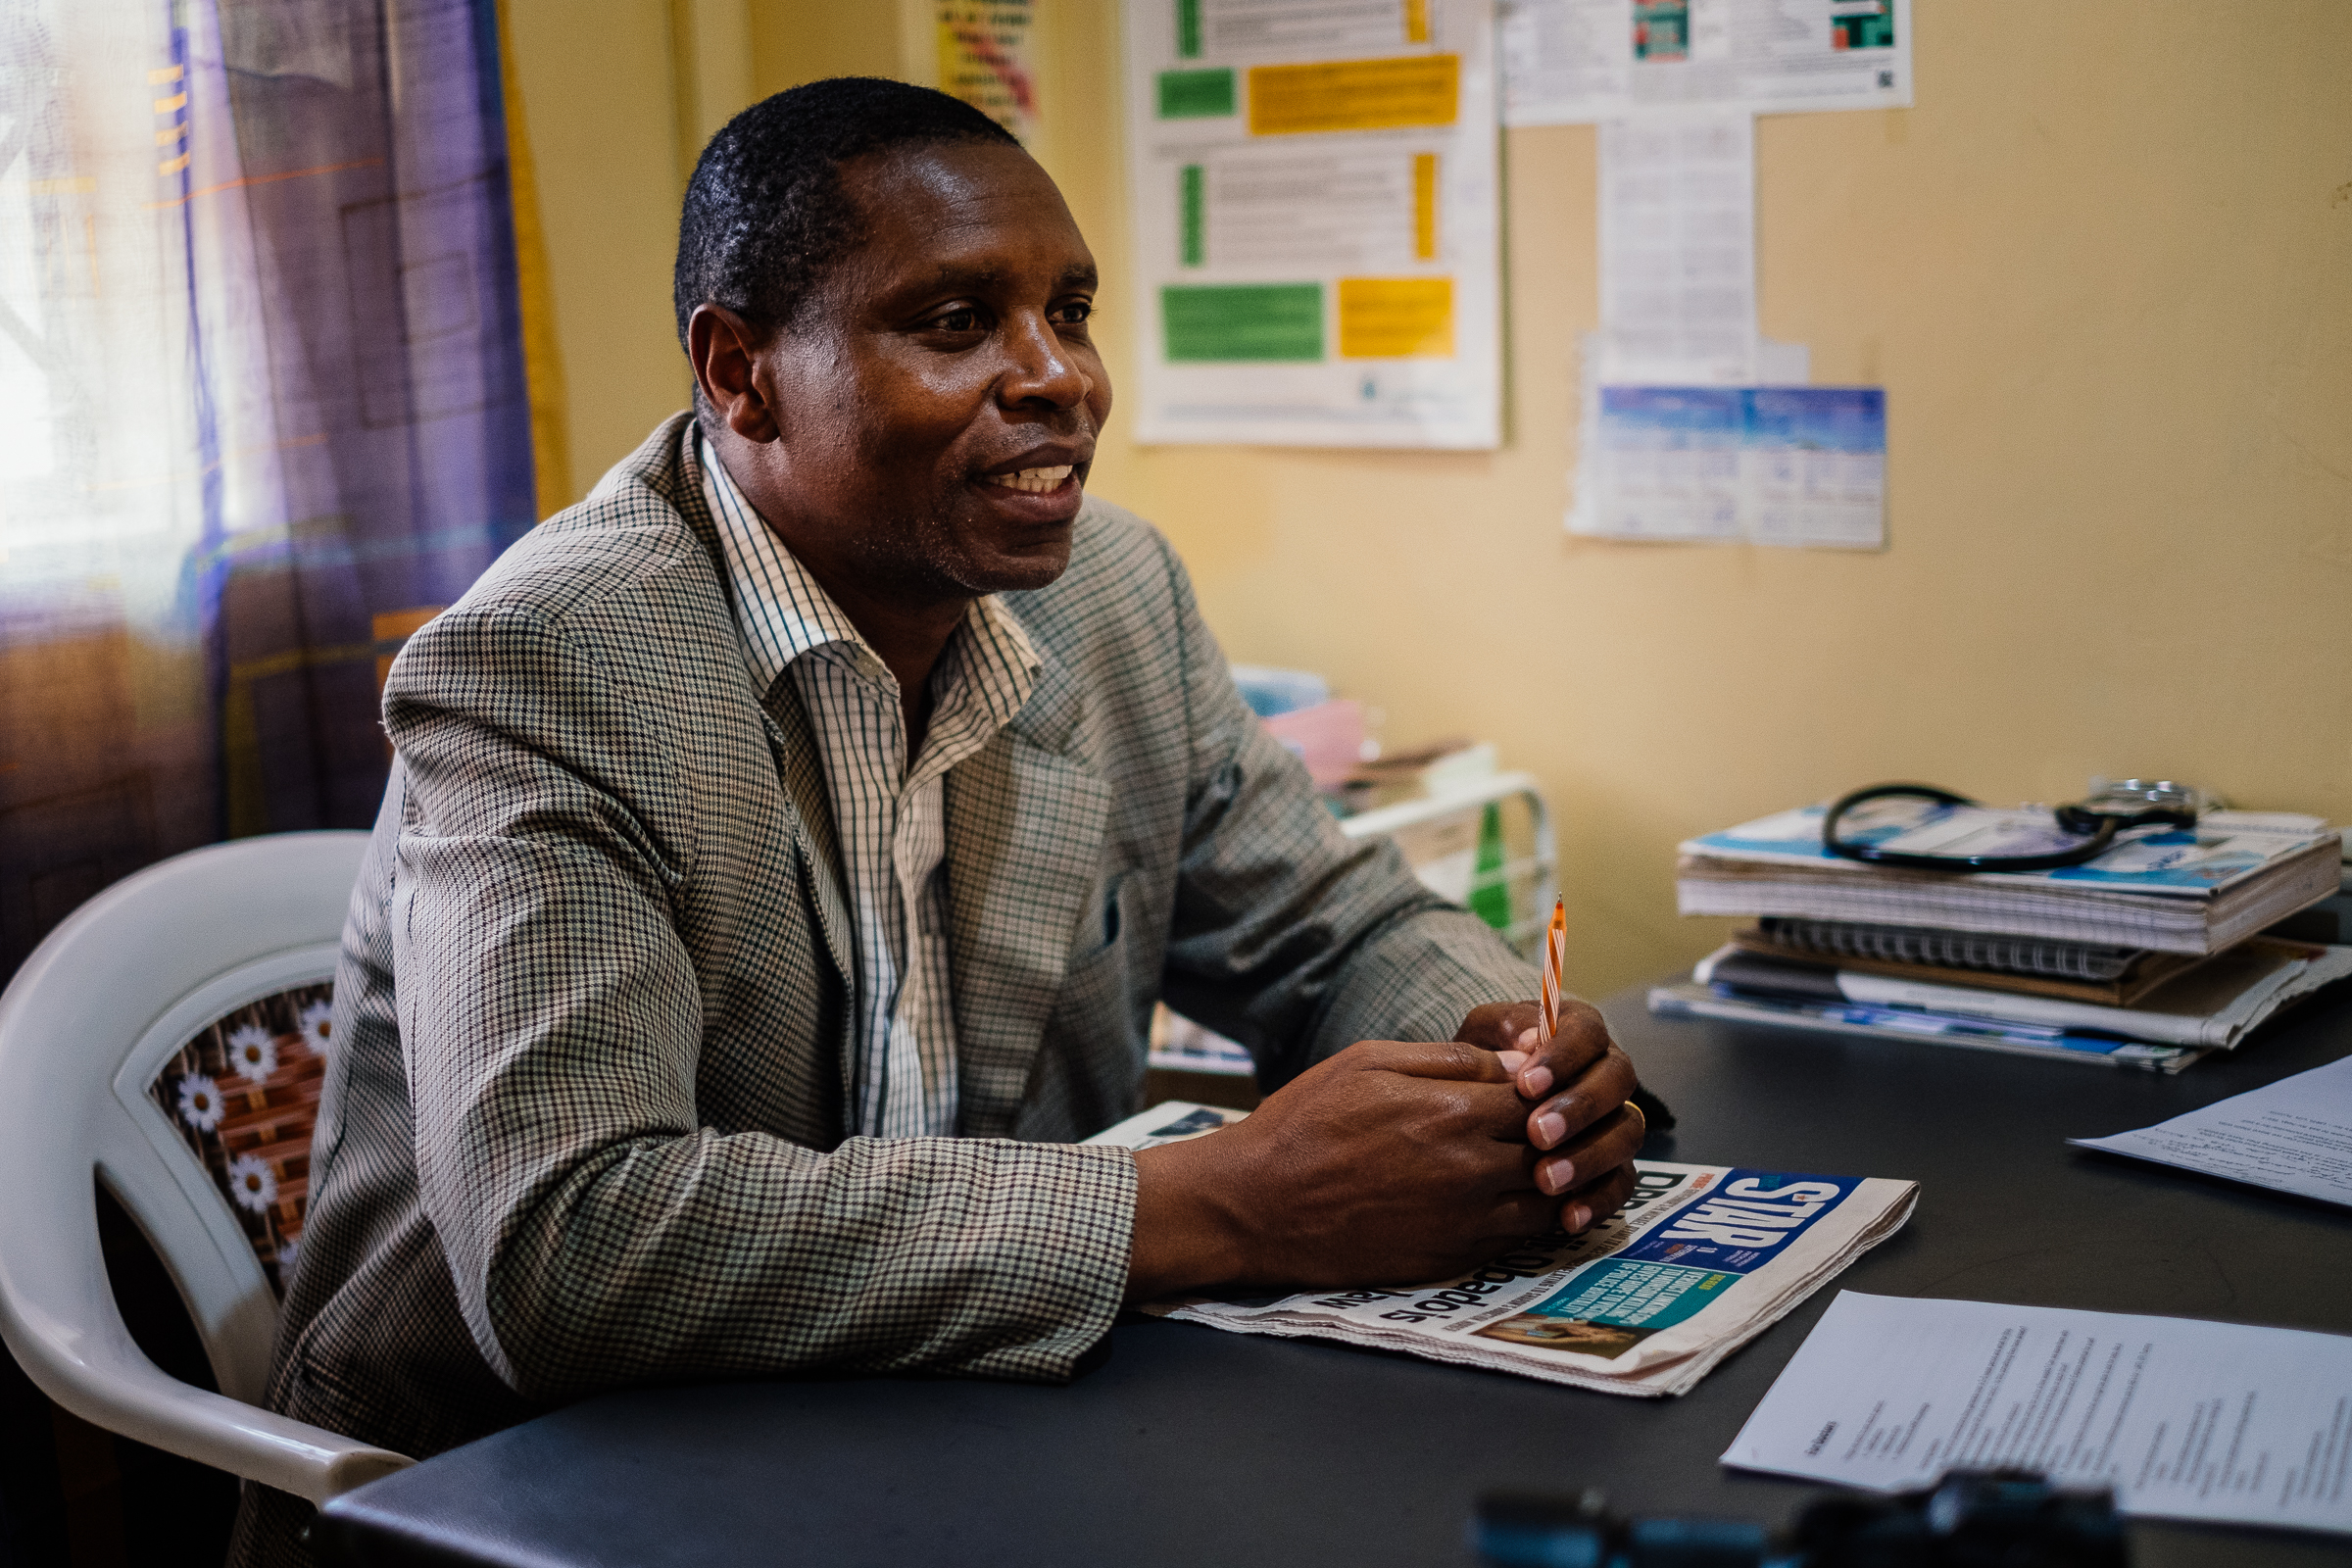 We did a co-creation session and an observation with Dr Jabilo, an experienced doctor in his own private clinic in a middle-income area in Nairobi.